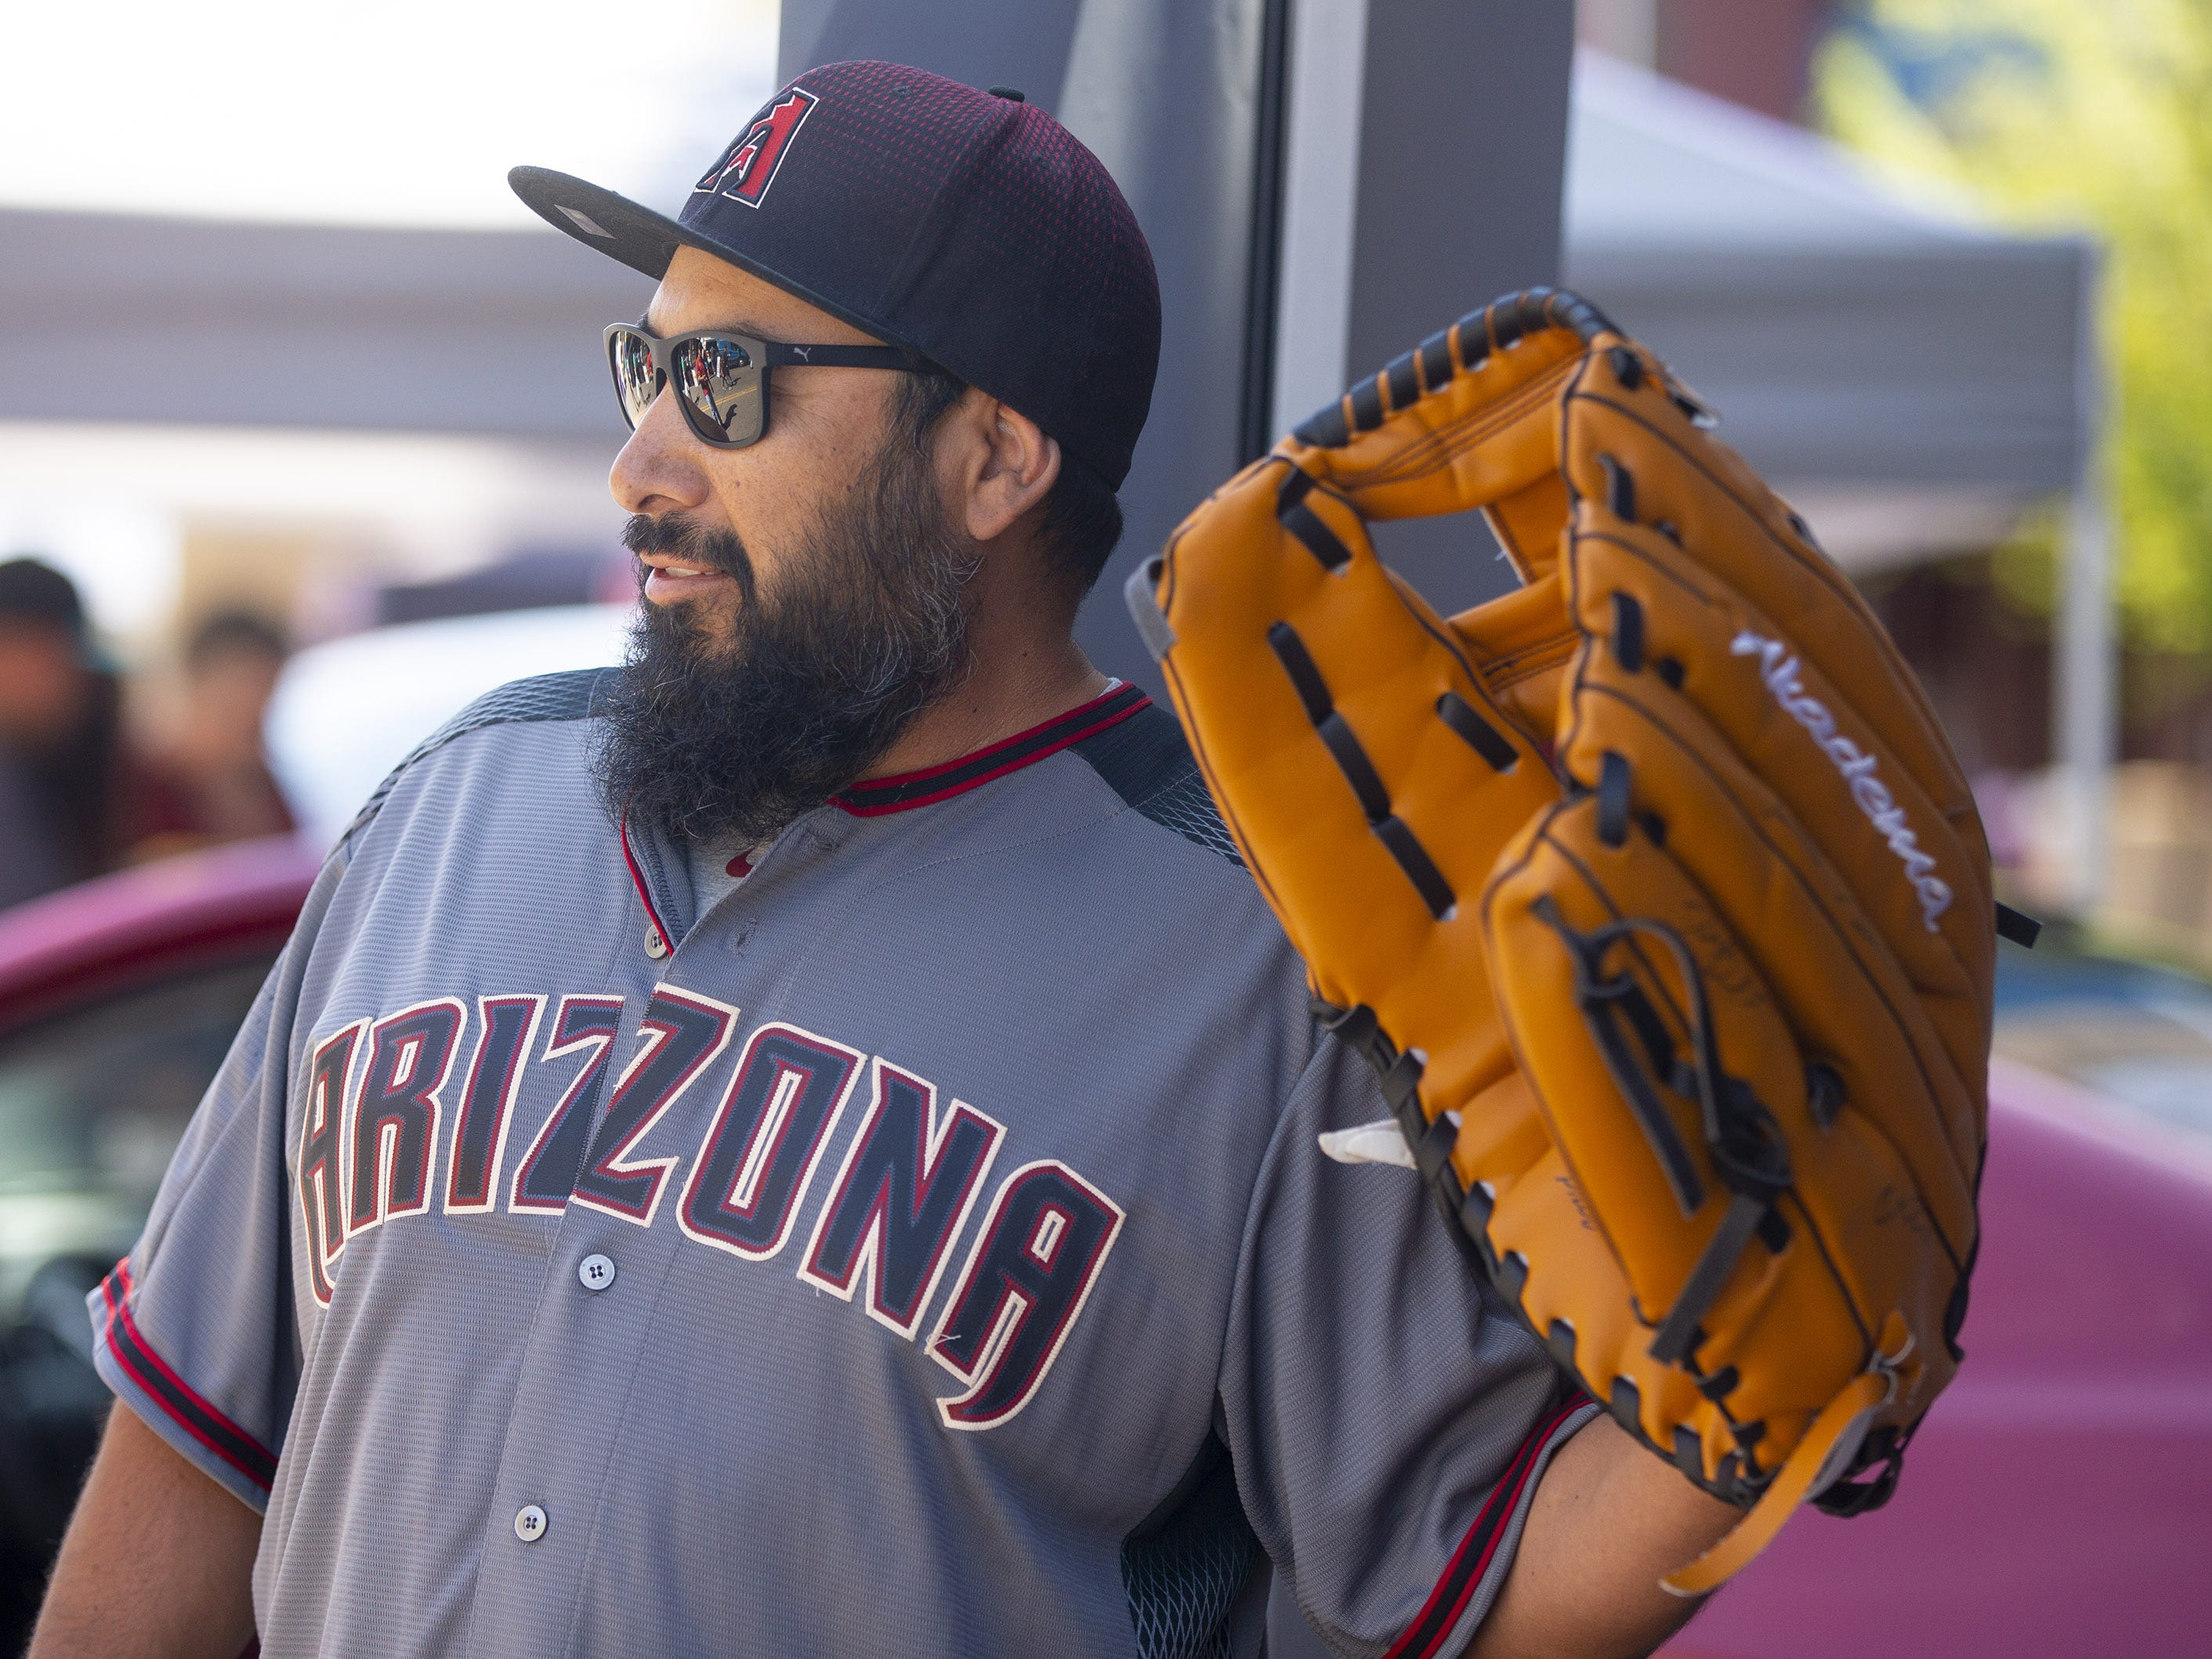 Mario Gomez, of Phoenix, is ready with his lucky glove for Opening Day at Chase Field in Phoenix on April 5.